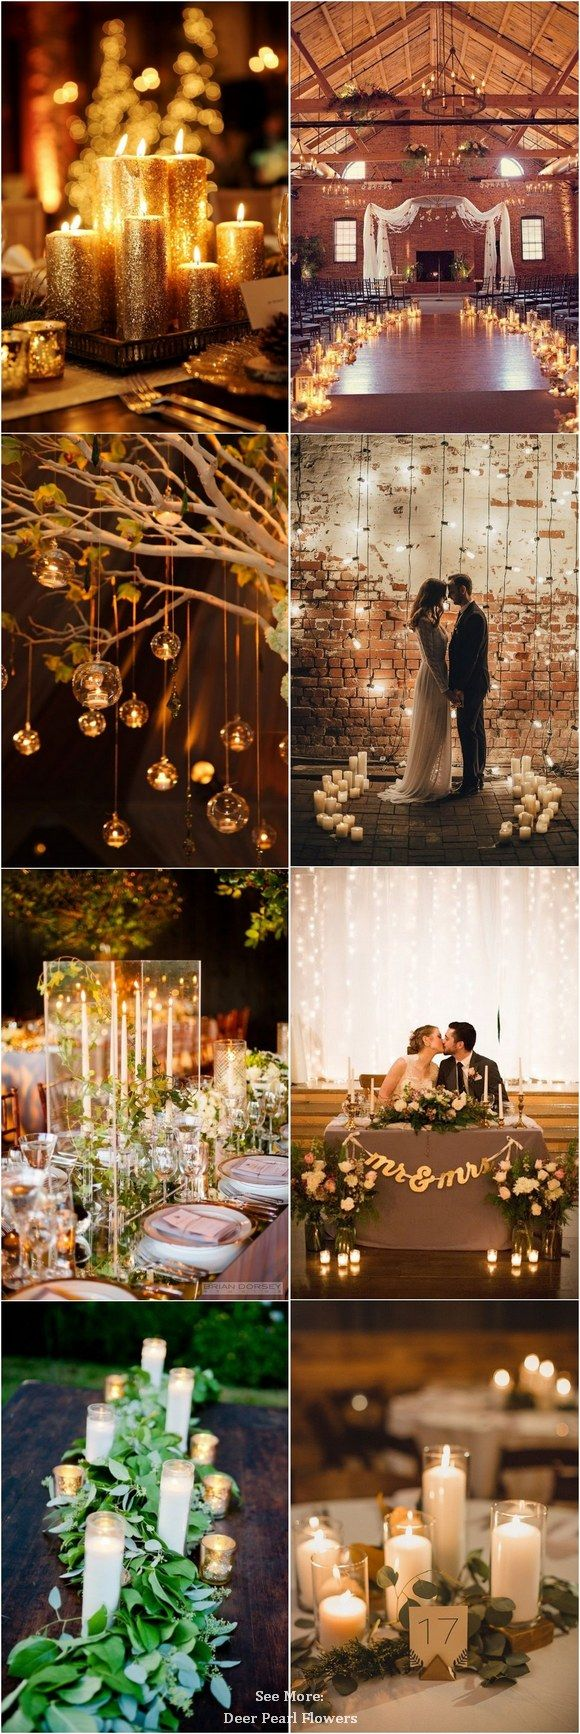 Rustic romantic wedding candle decor ideas httpwww rustic romantic wedding candle decor ideas junglespirit